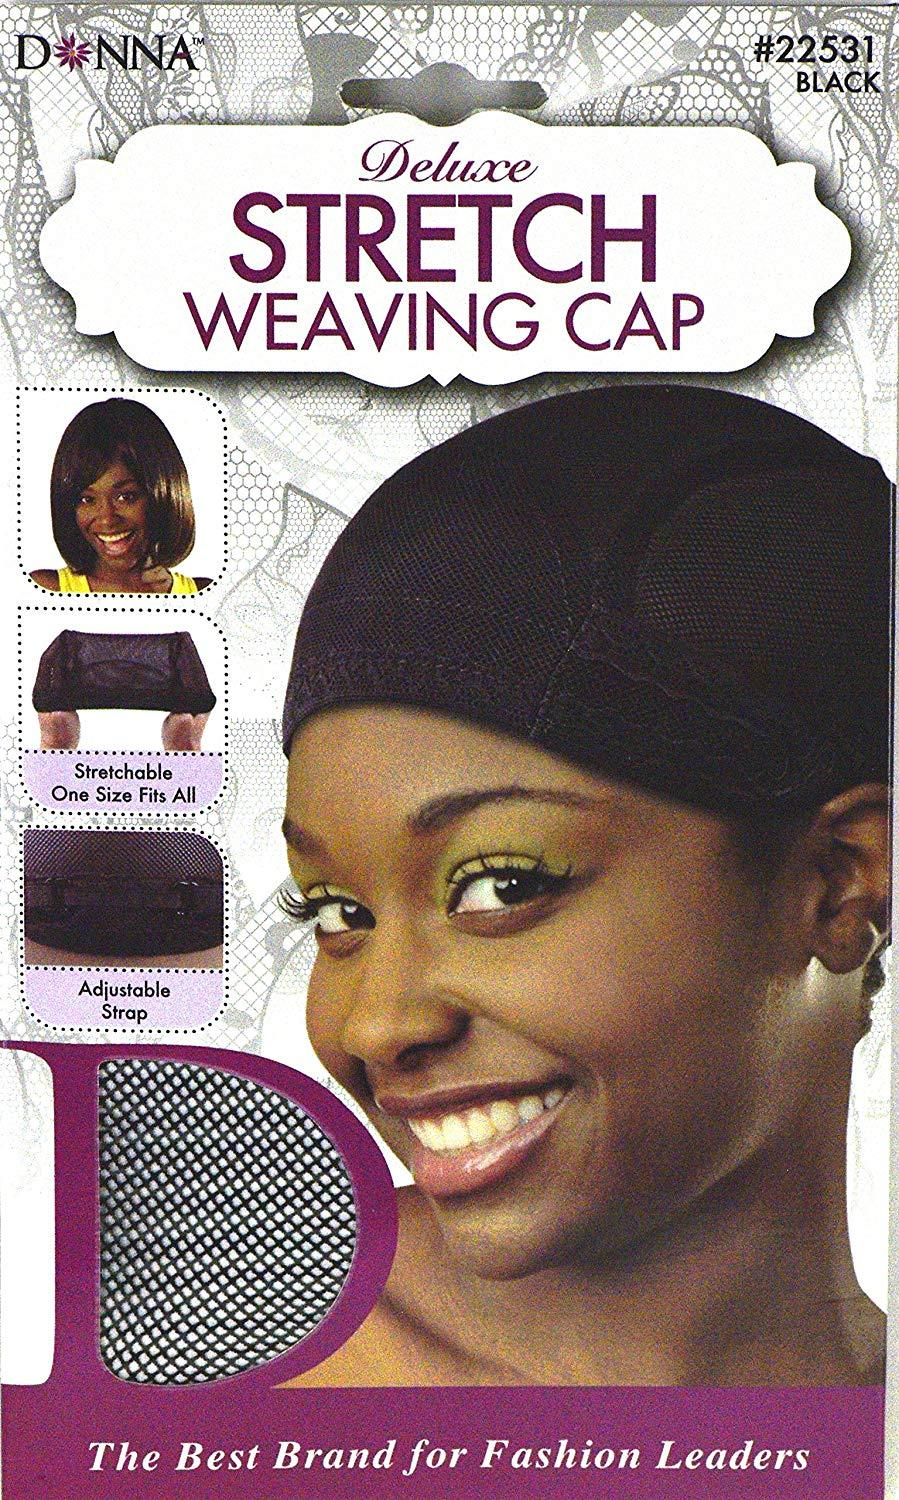 Donna Deluxe Stretch Weaving Cap Black #22531 (12PC)